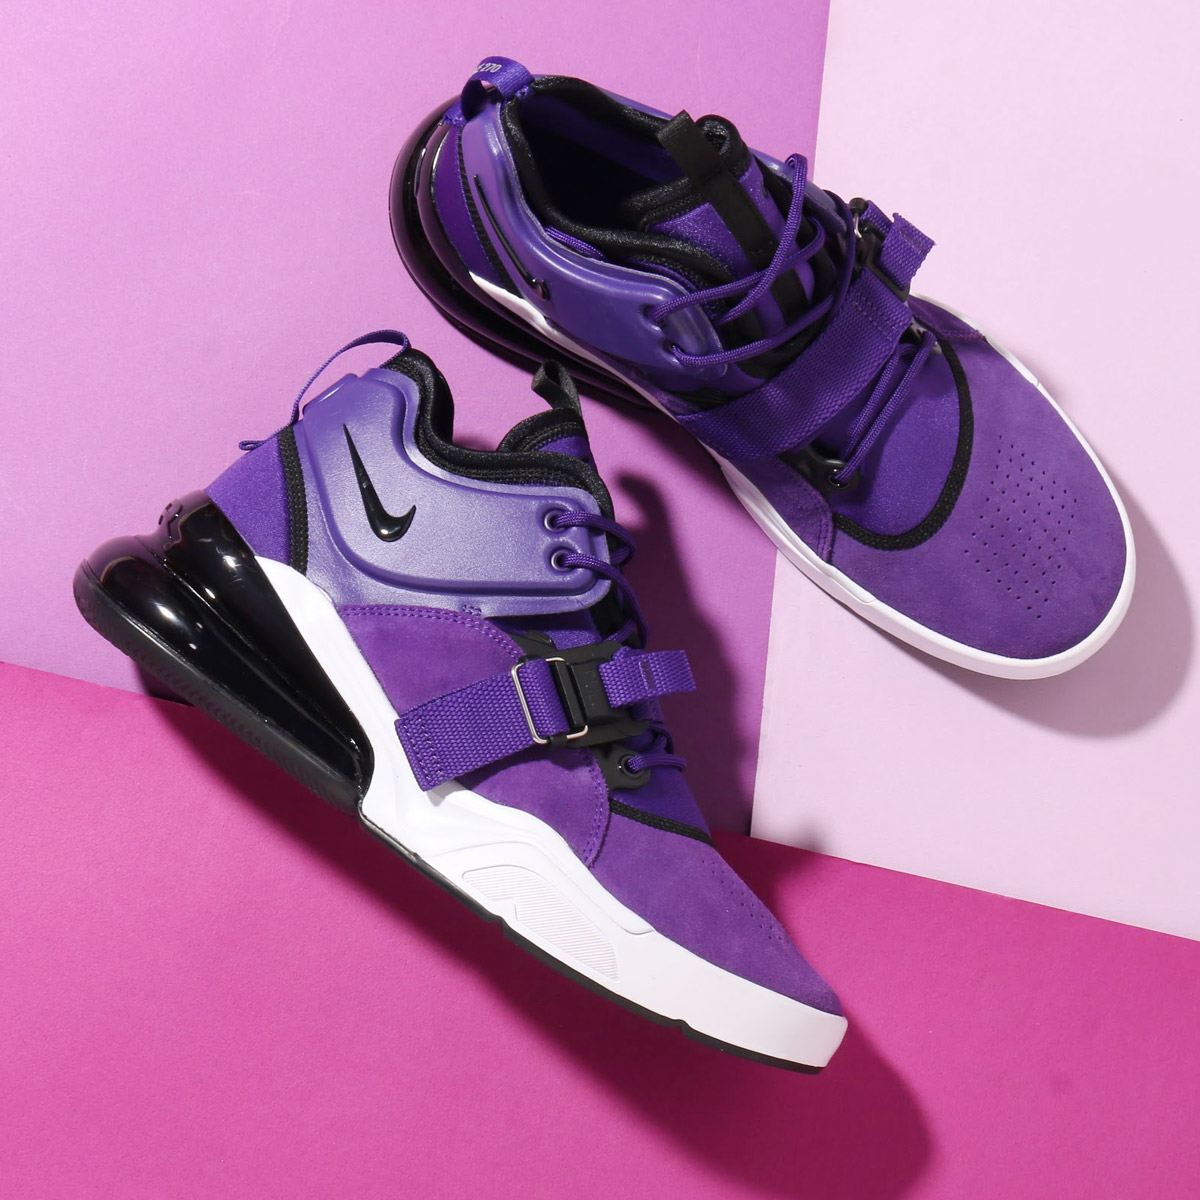 437d20c4afe90 NIKE AIR FORCE 270 QS PRPL (Nike air force 270 PRPL) (COURT PURPLE BLACK-WHITE)  18SU-S